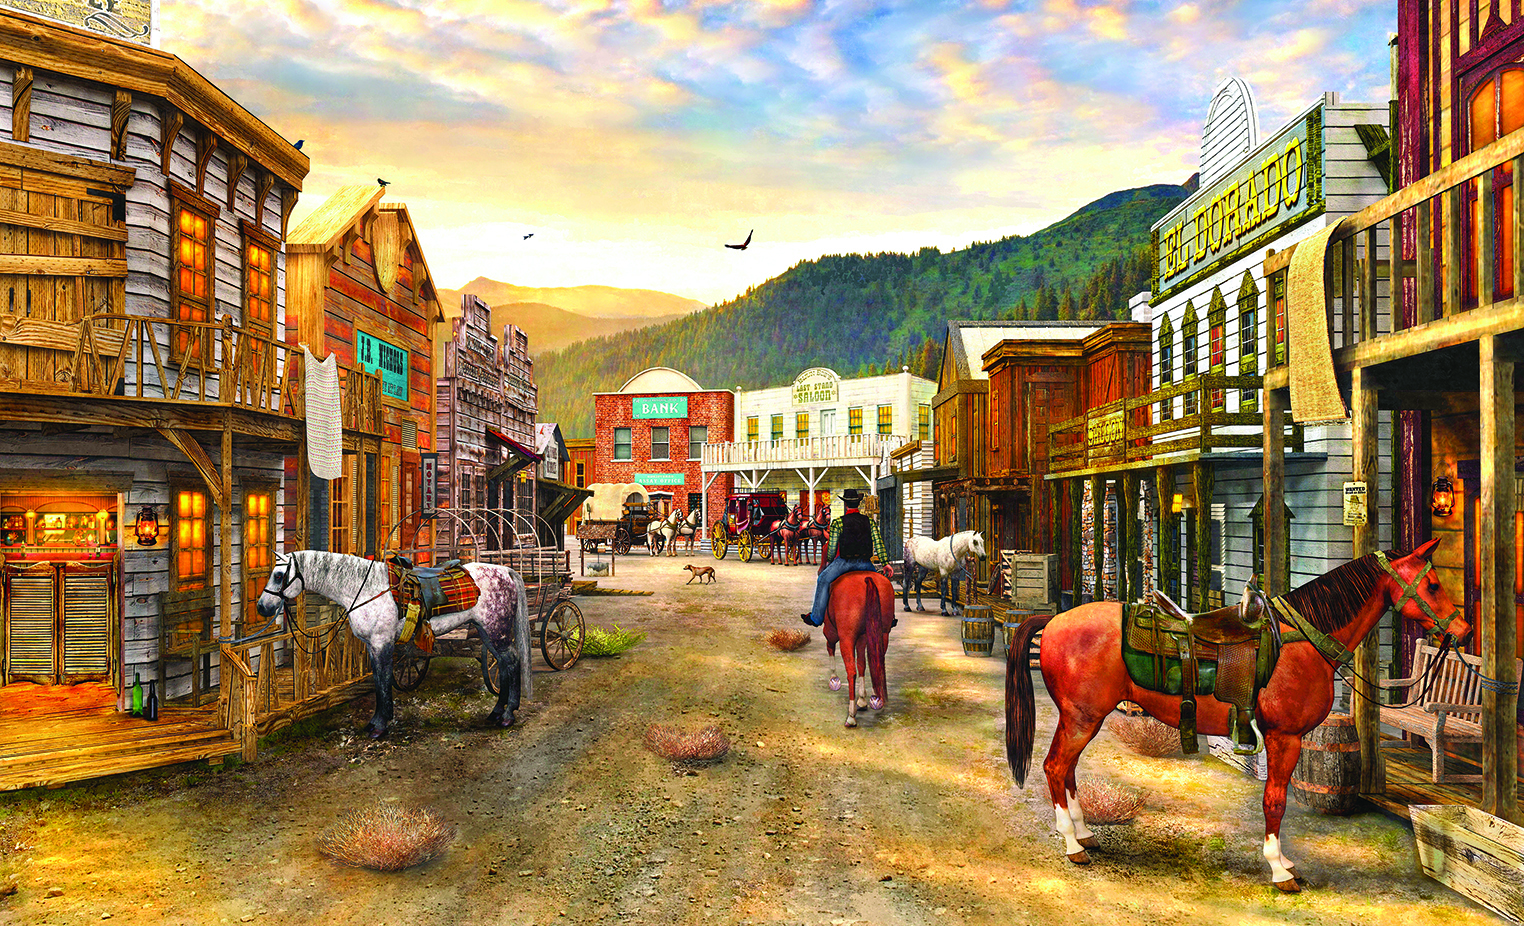 Wild West Town 550 pc Jigsaw Puzzle by SunsOut